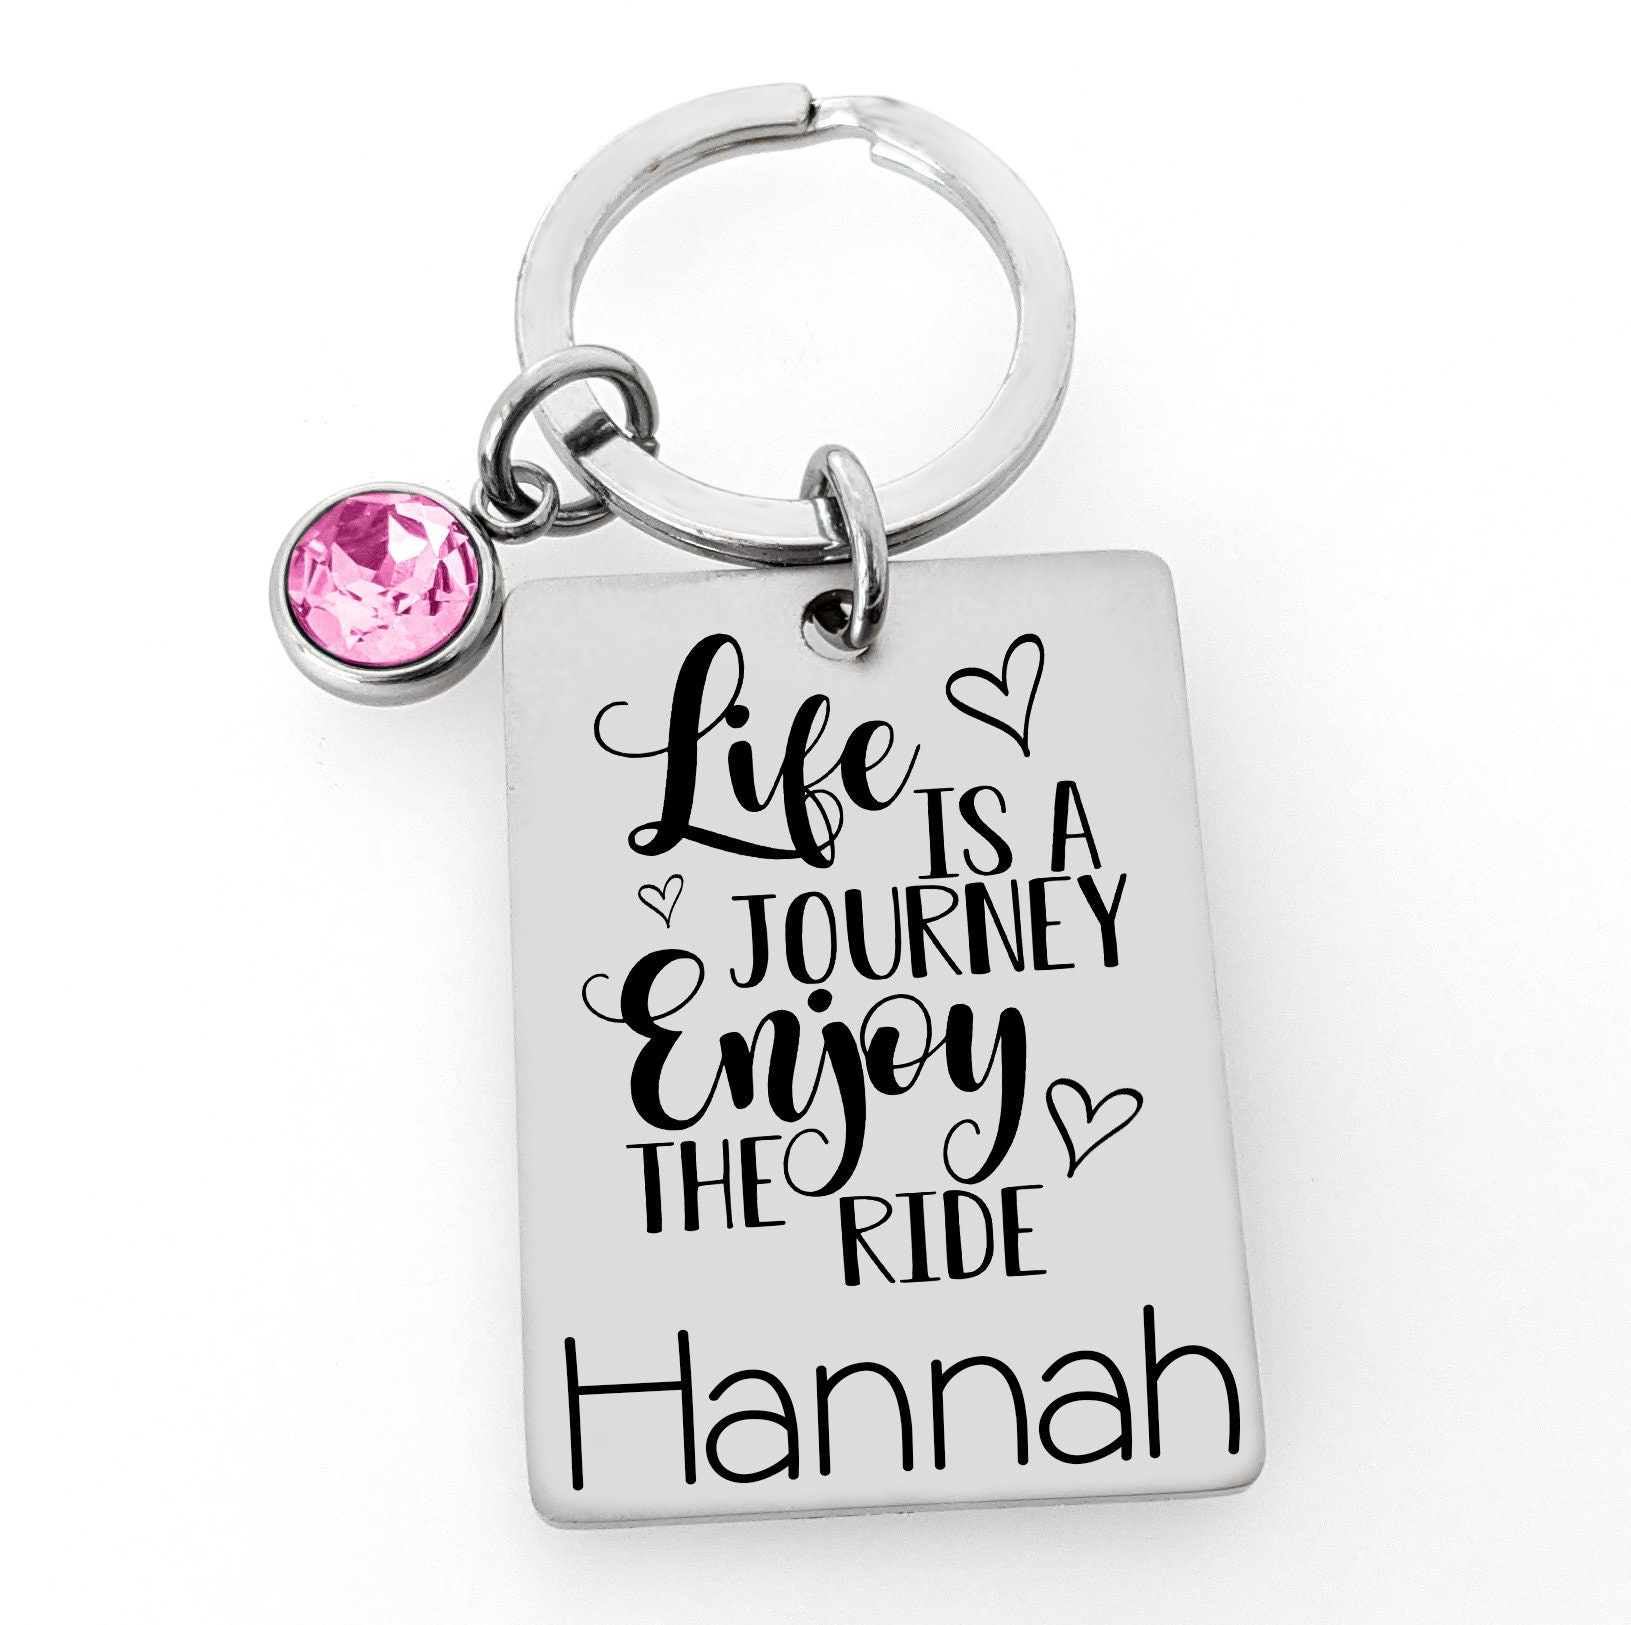 Life is a Journey Sweet 16 Birthday Gift for Teenager Sweet 16 Keychain 3 design options Personalized Sweet 16 Keychain Drive Safe